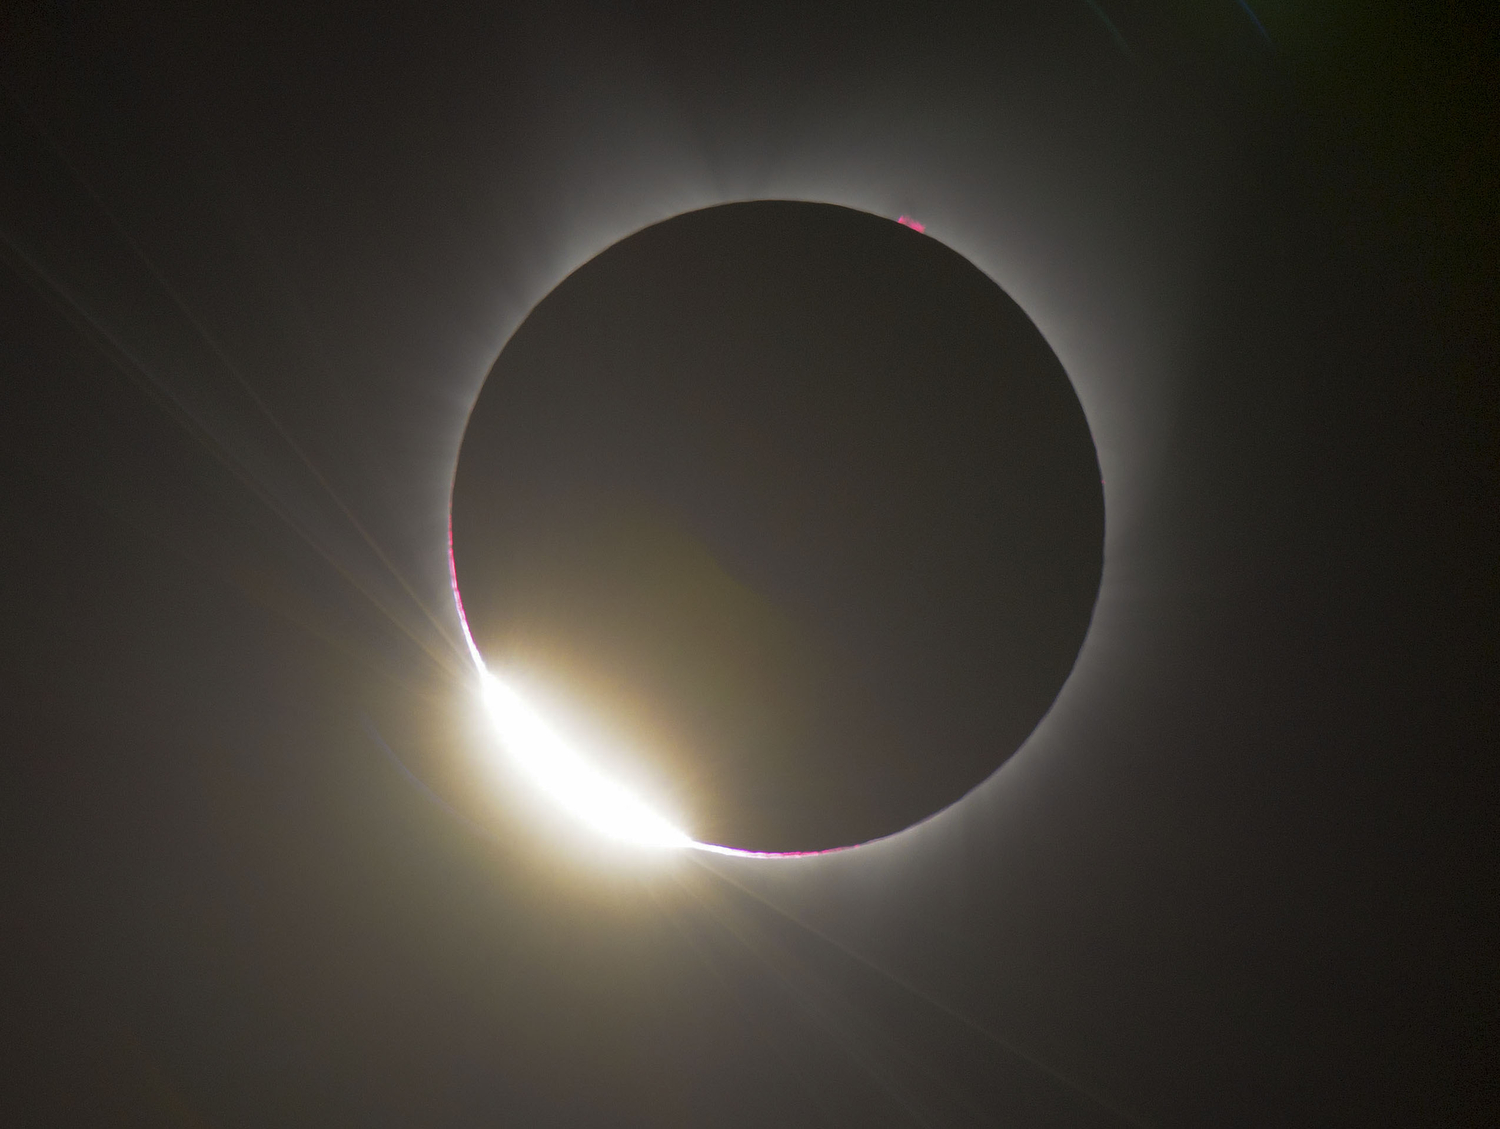 """The last bit of sunlight disappears behind the moon in aphenomenon commonly called the """"Diamond Ring"""" during the total solar eclipse near Mitchell, OR on Monday, August 21, 2017."""